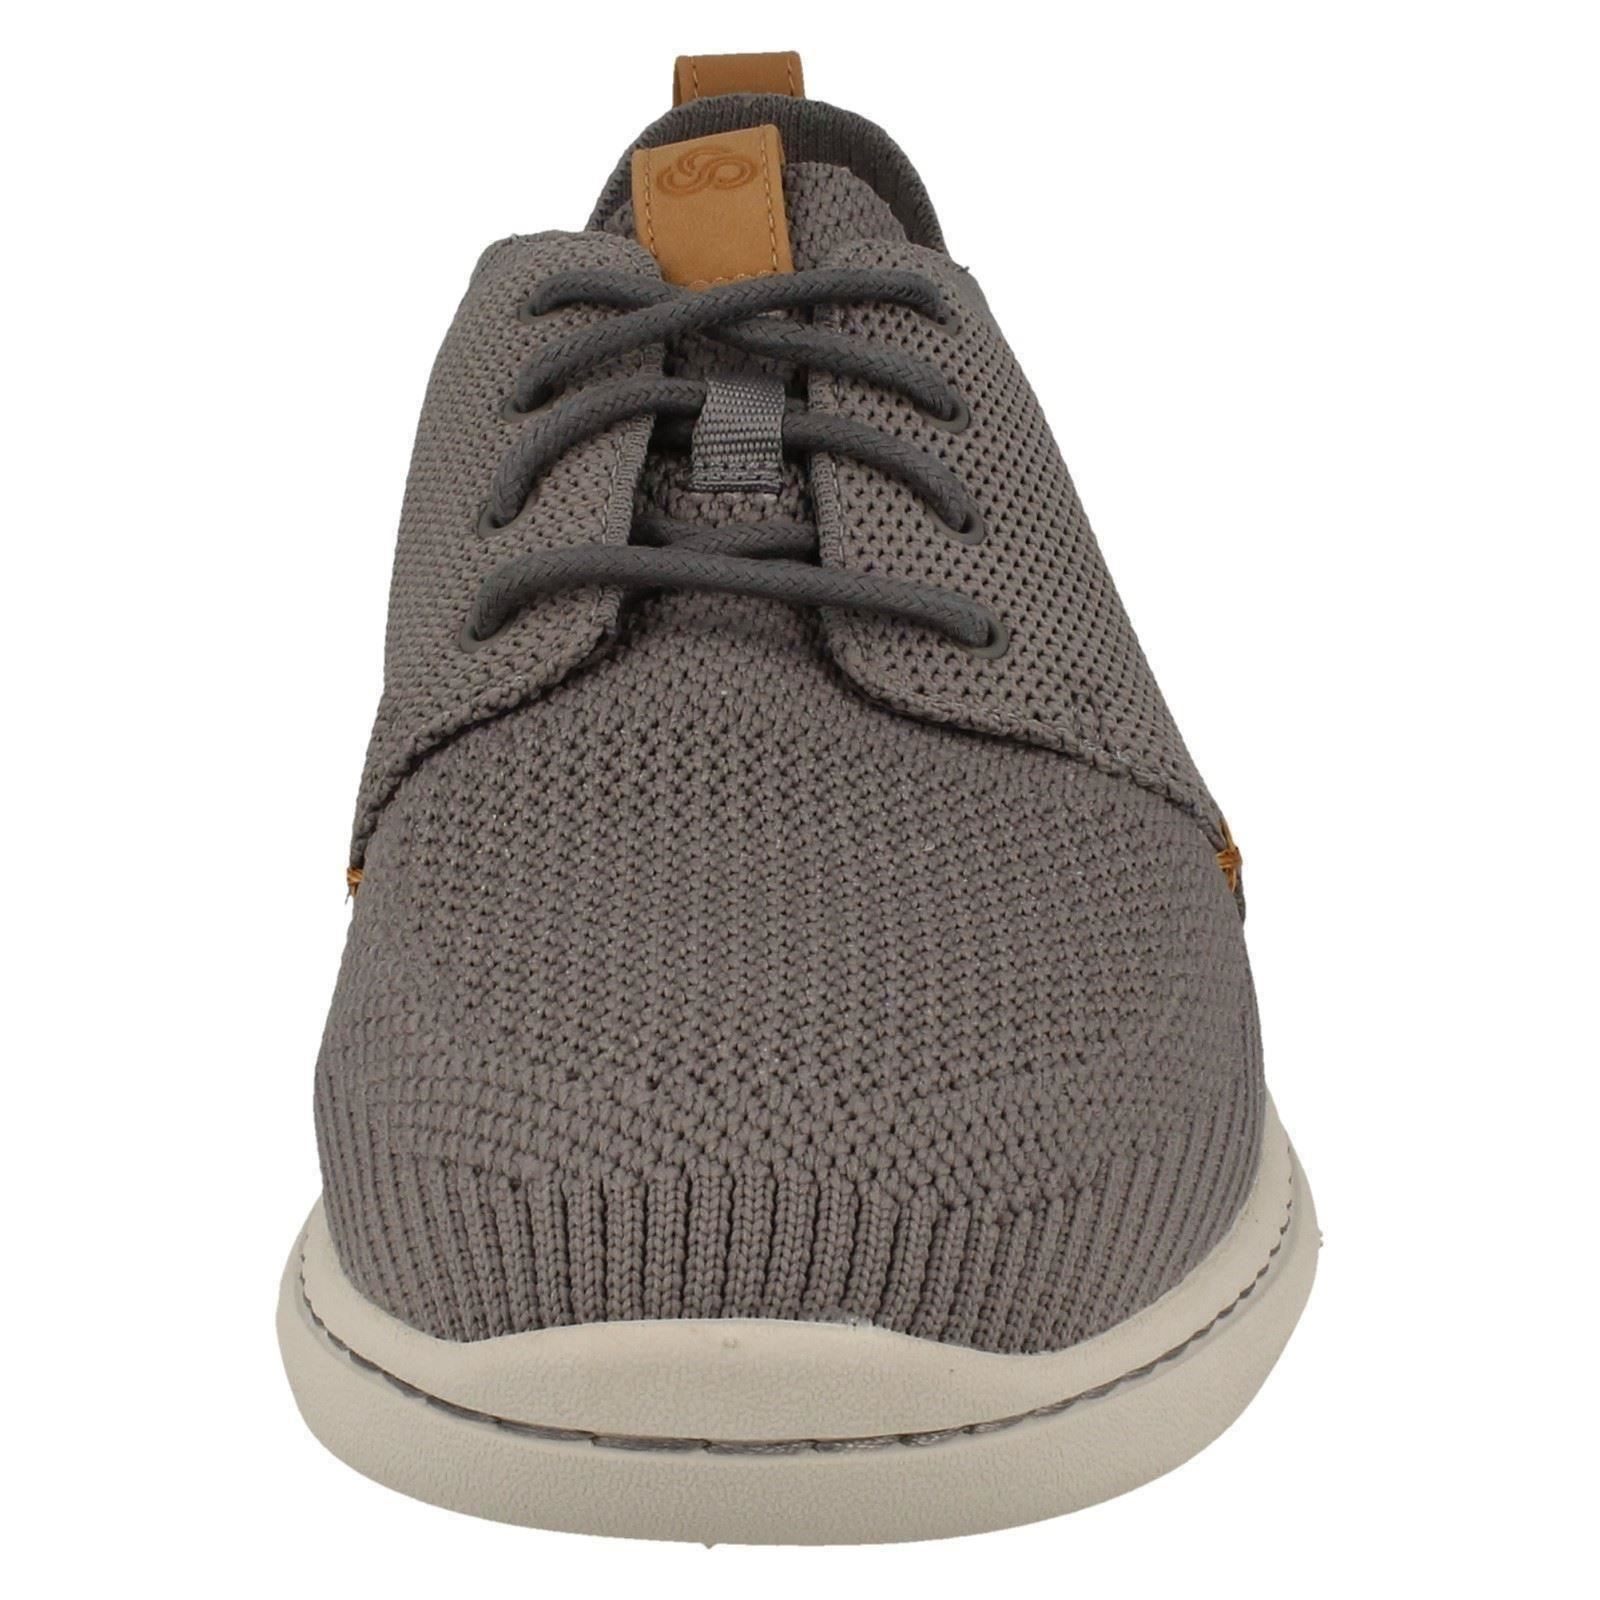 Herren Schuhes Clarks Lace Up Casual Schuhes Herren Step Urban Mix bcbc7d